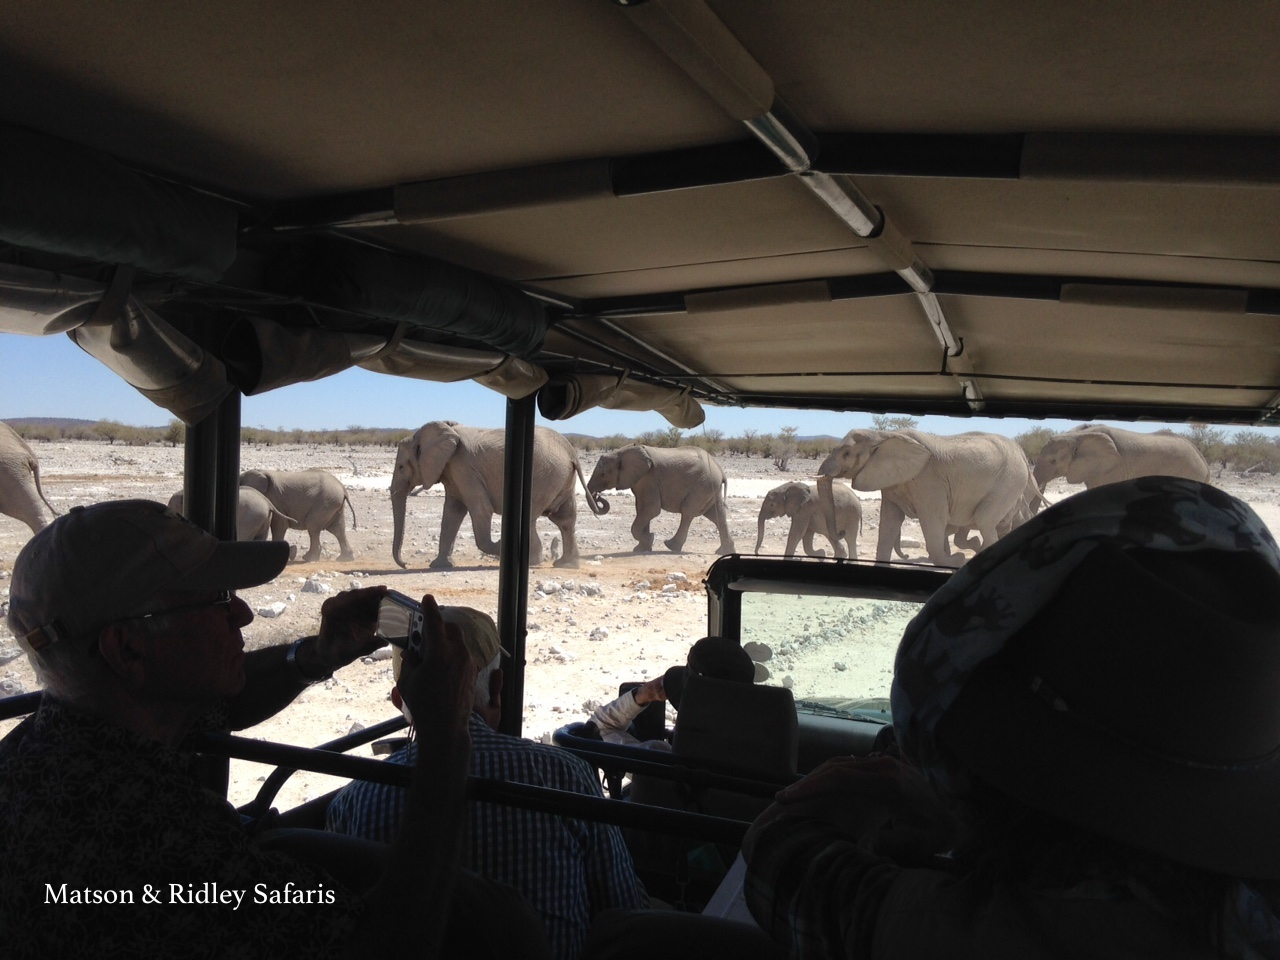 A magical moment - surrounded by elephants at Ombika waterhole, Etosha National Park